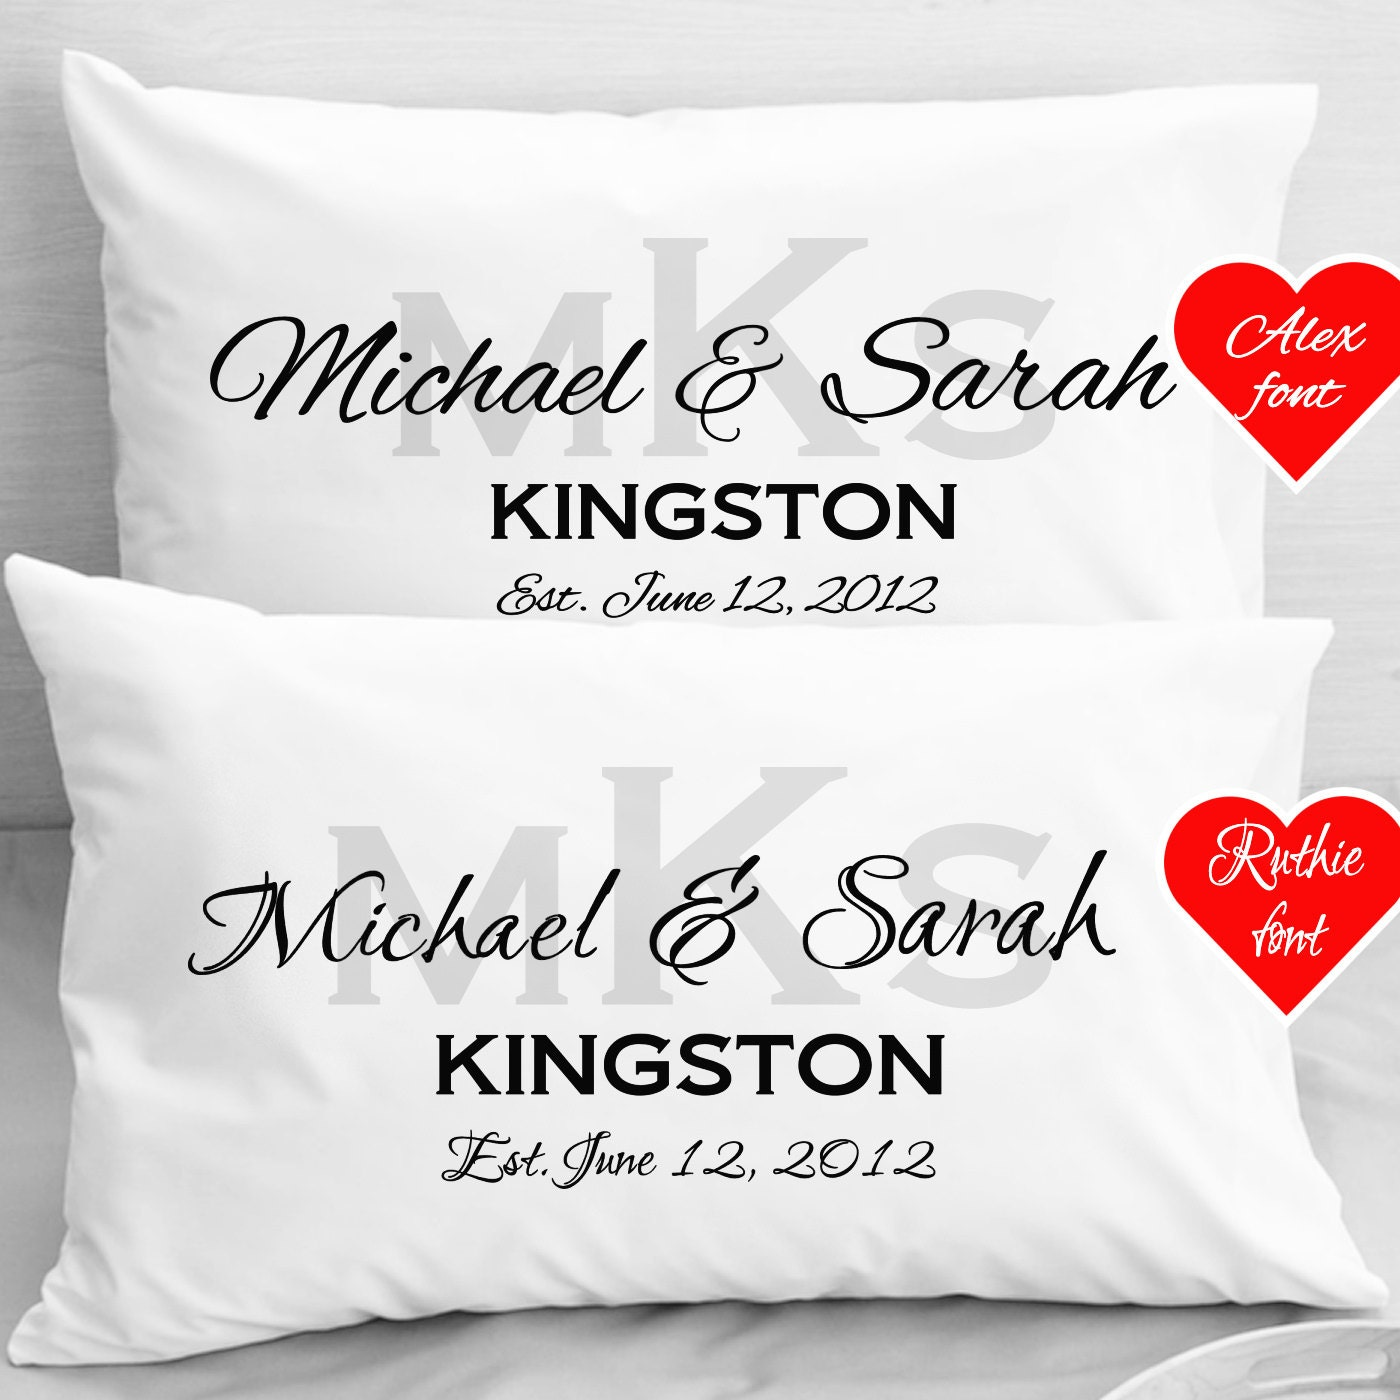 Personalised Wedding Gifts Pillow Cases : Personalized Wedding Pillow Cases Anniversary Newlyweds gifts